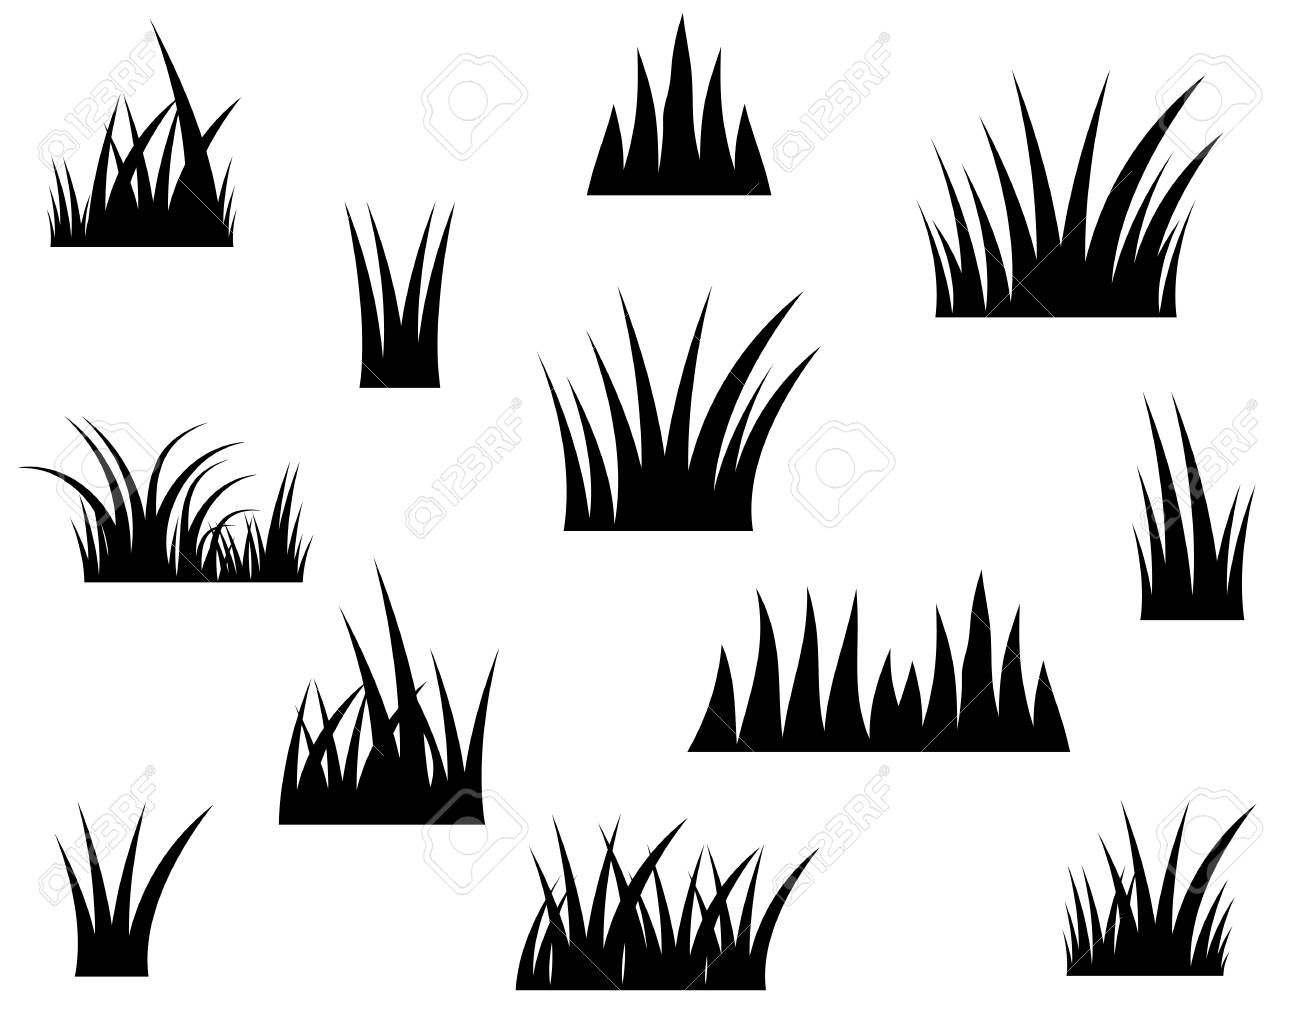 black vector grass silhouette on white background royalty free cliparts vectors and stock illustration image 93339560 123rf com